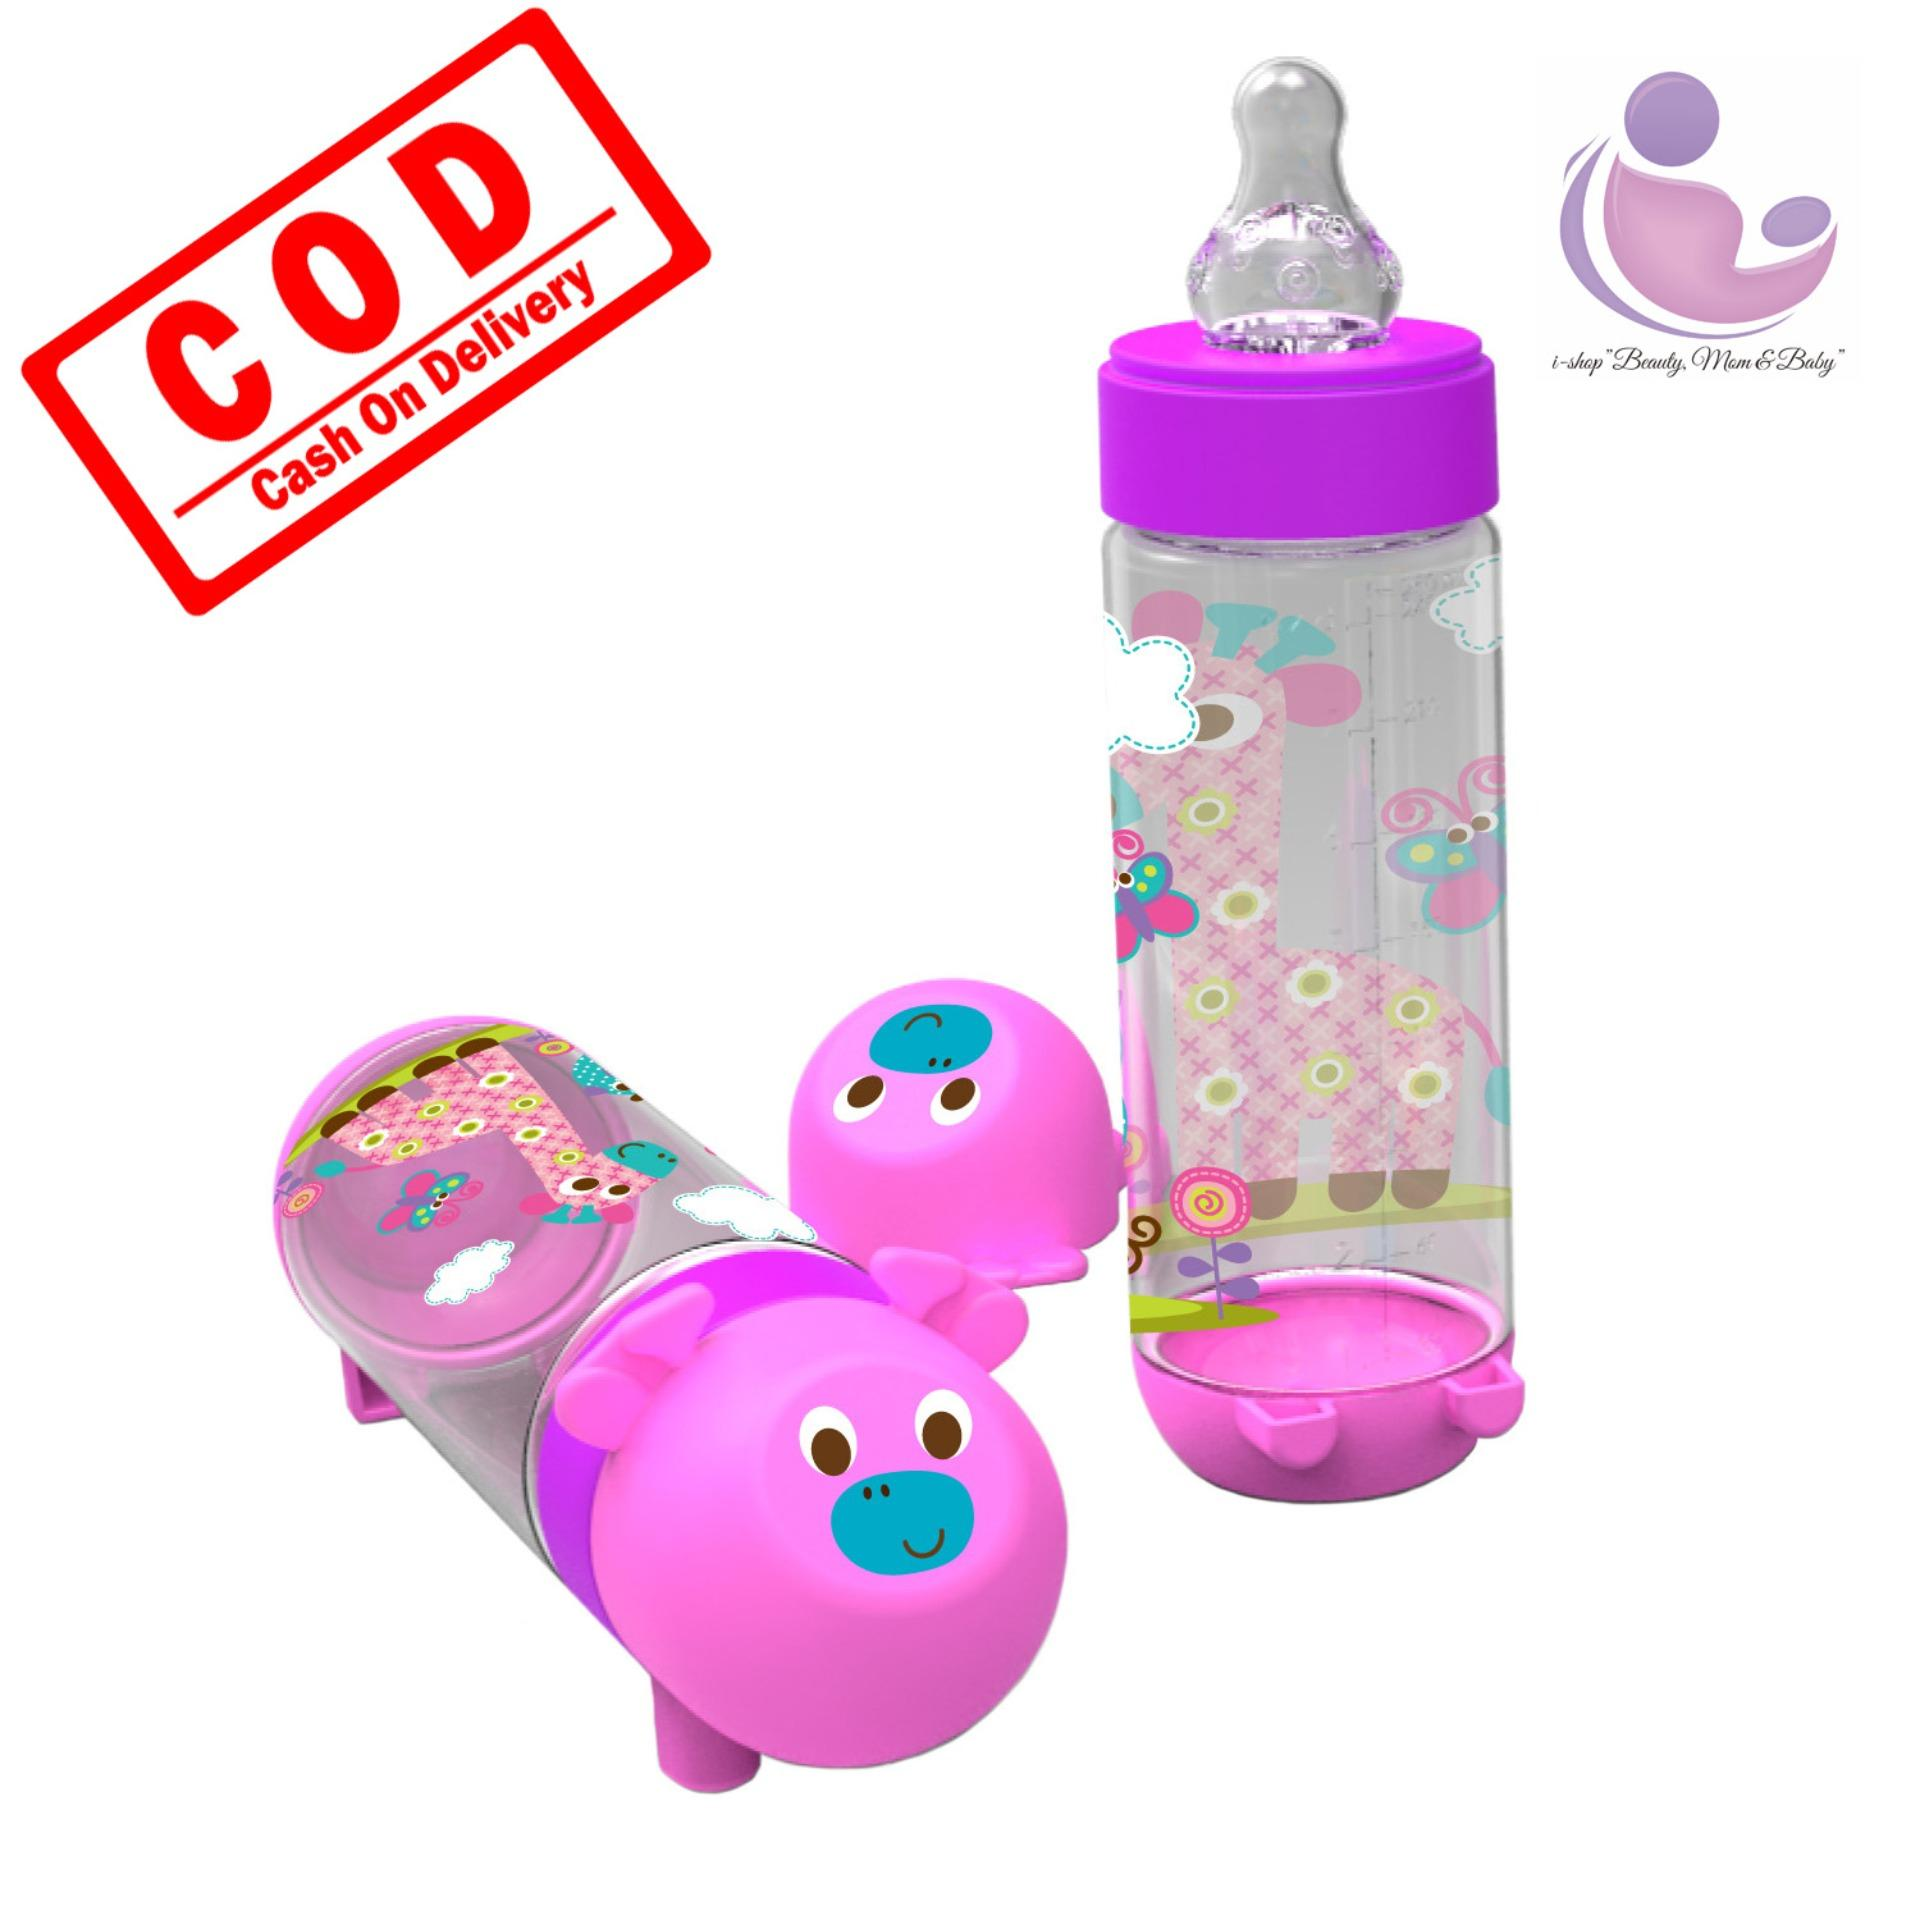 Fitur Bebe Botol Susu Bayi Eco Pc 250ml Kangaroo Type 3 Buy 2 Get 1 Pp Color Ishop Ap002 Baby Safe Feeding Bottle 250 Ml